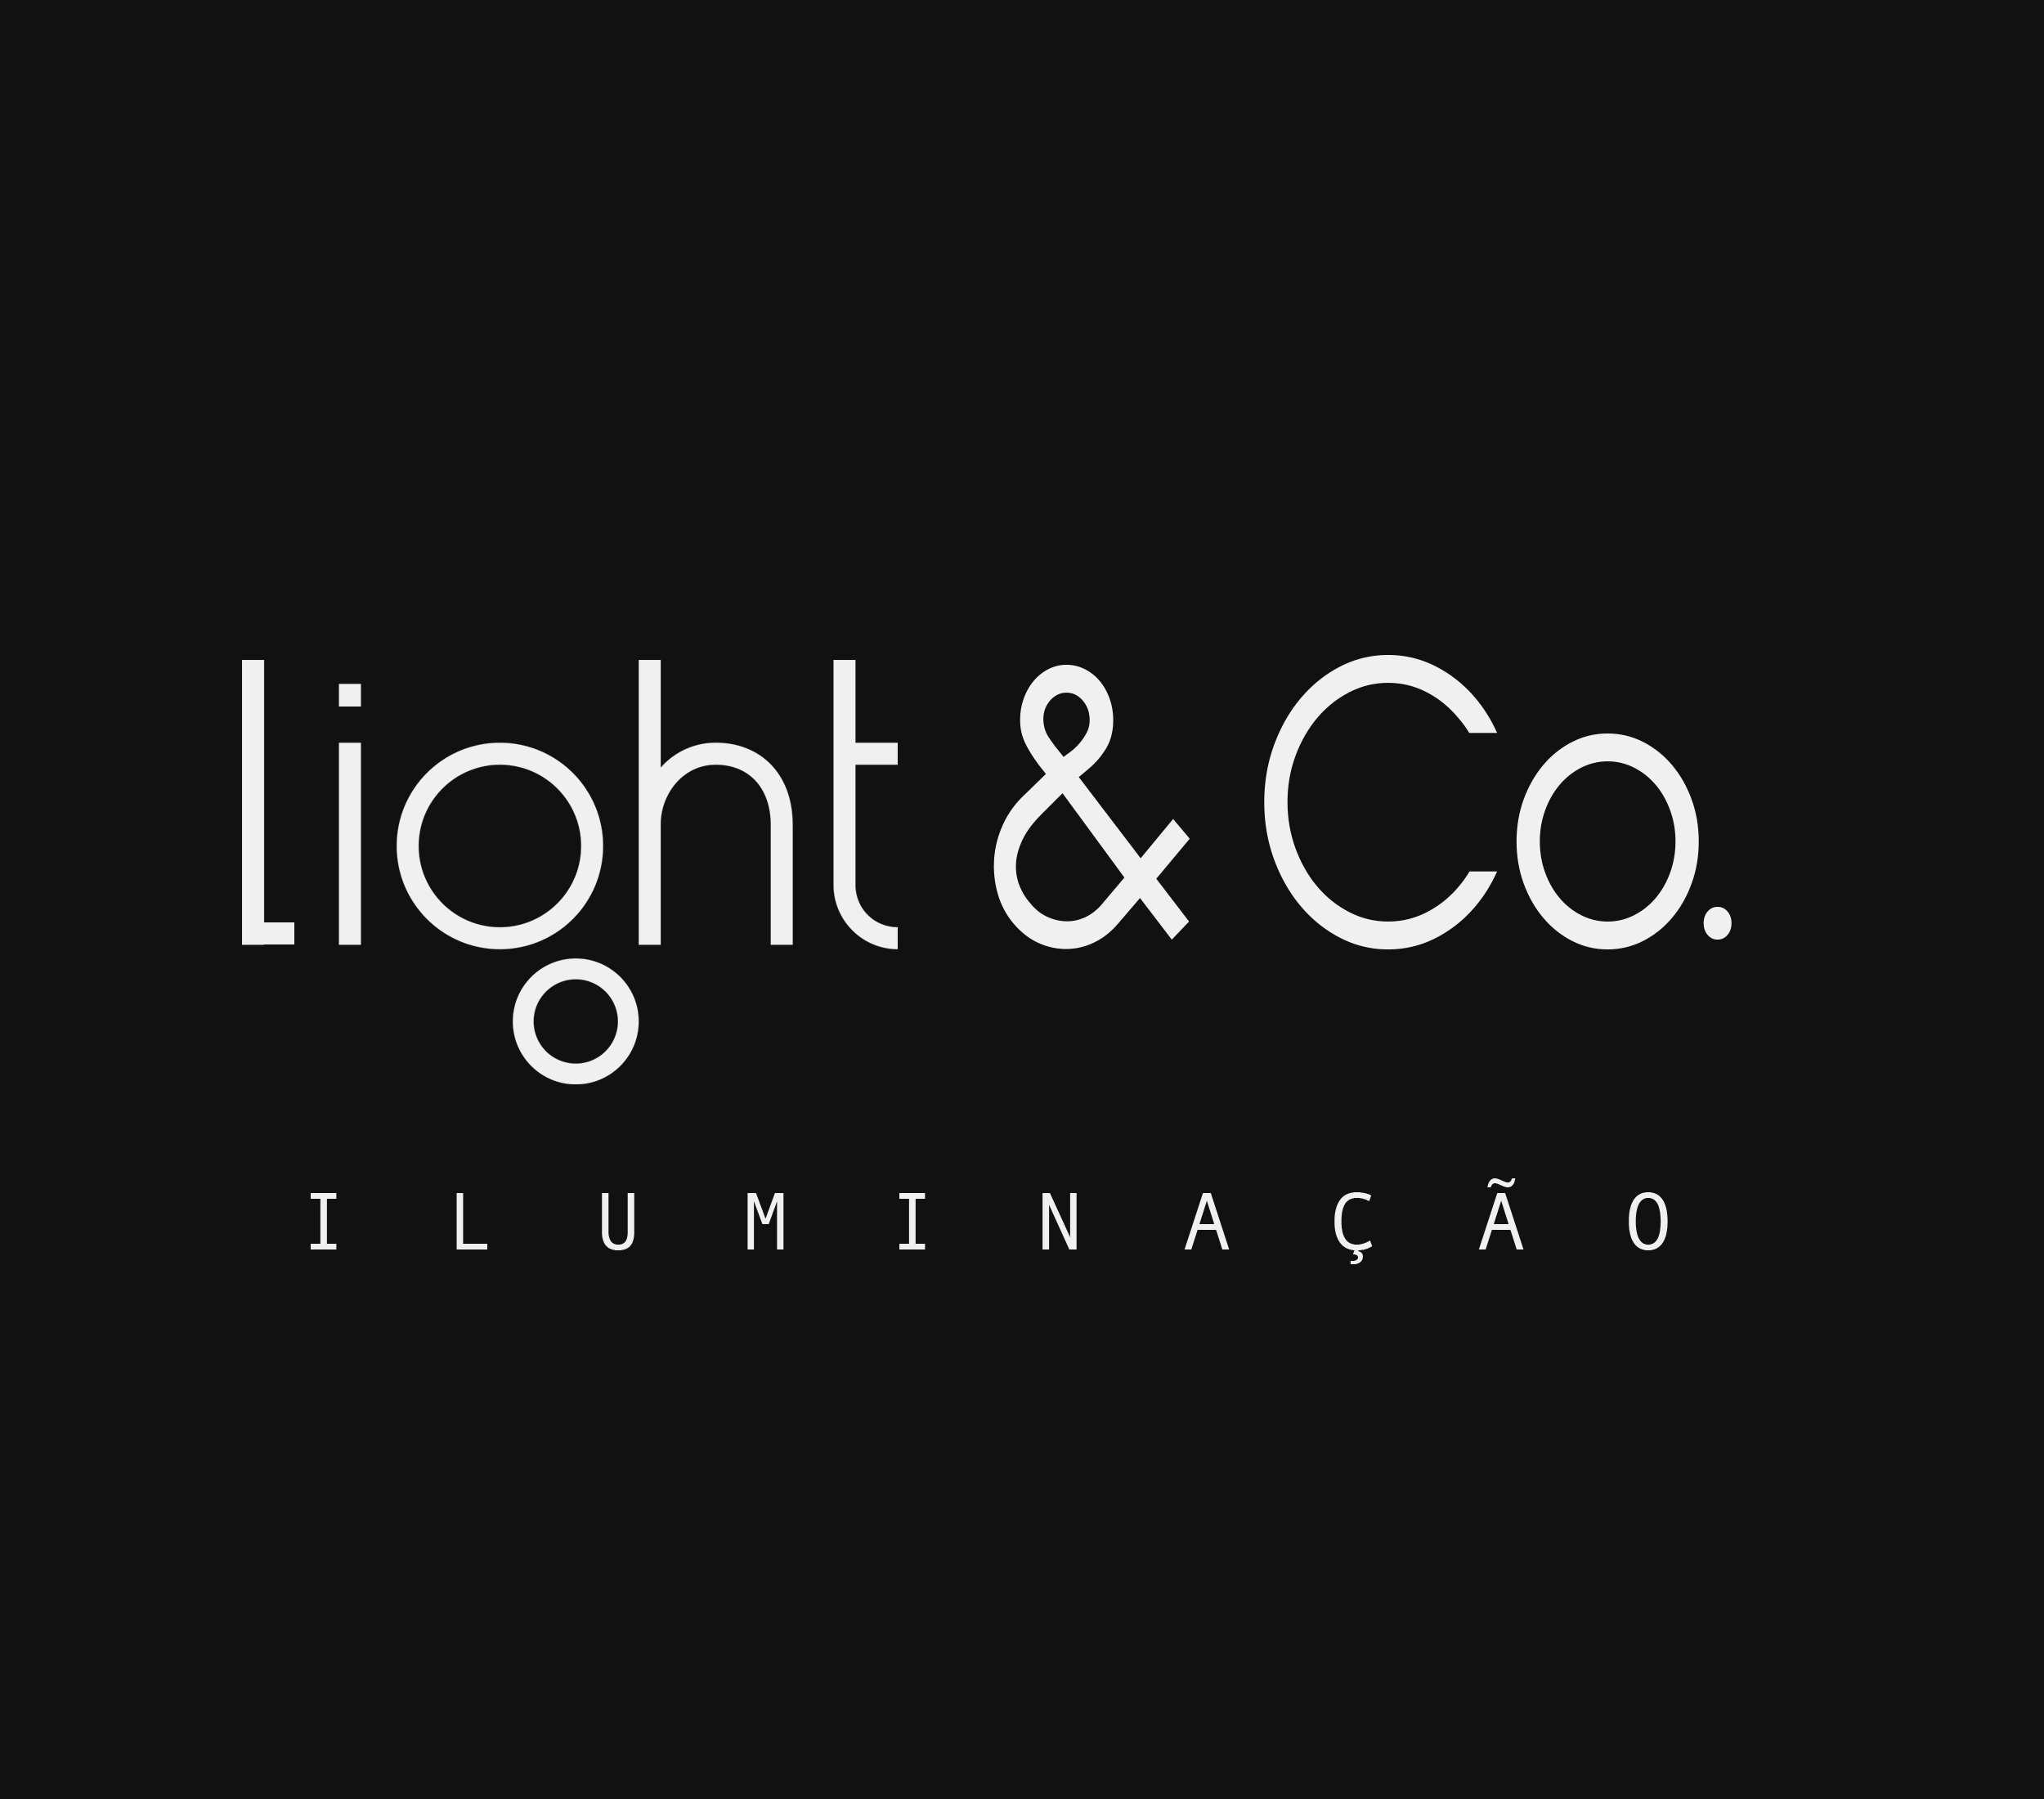 Light & Co